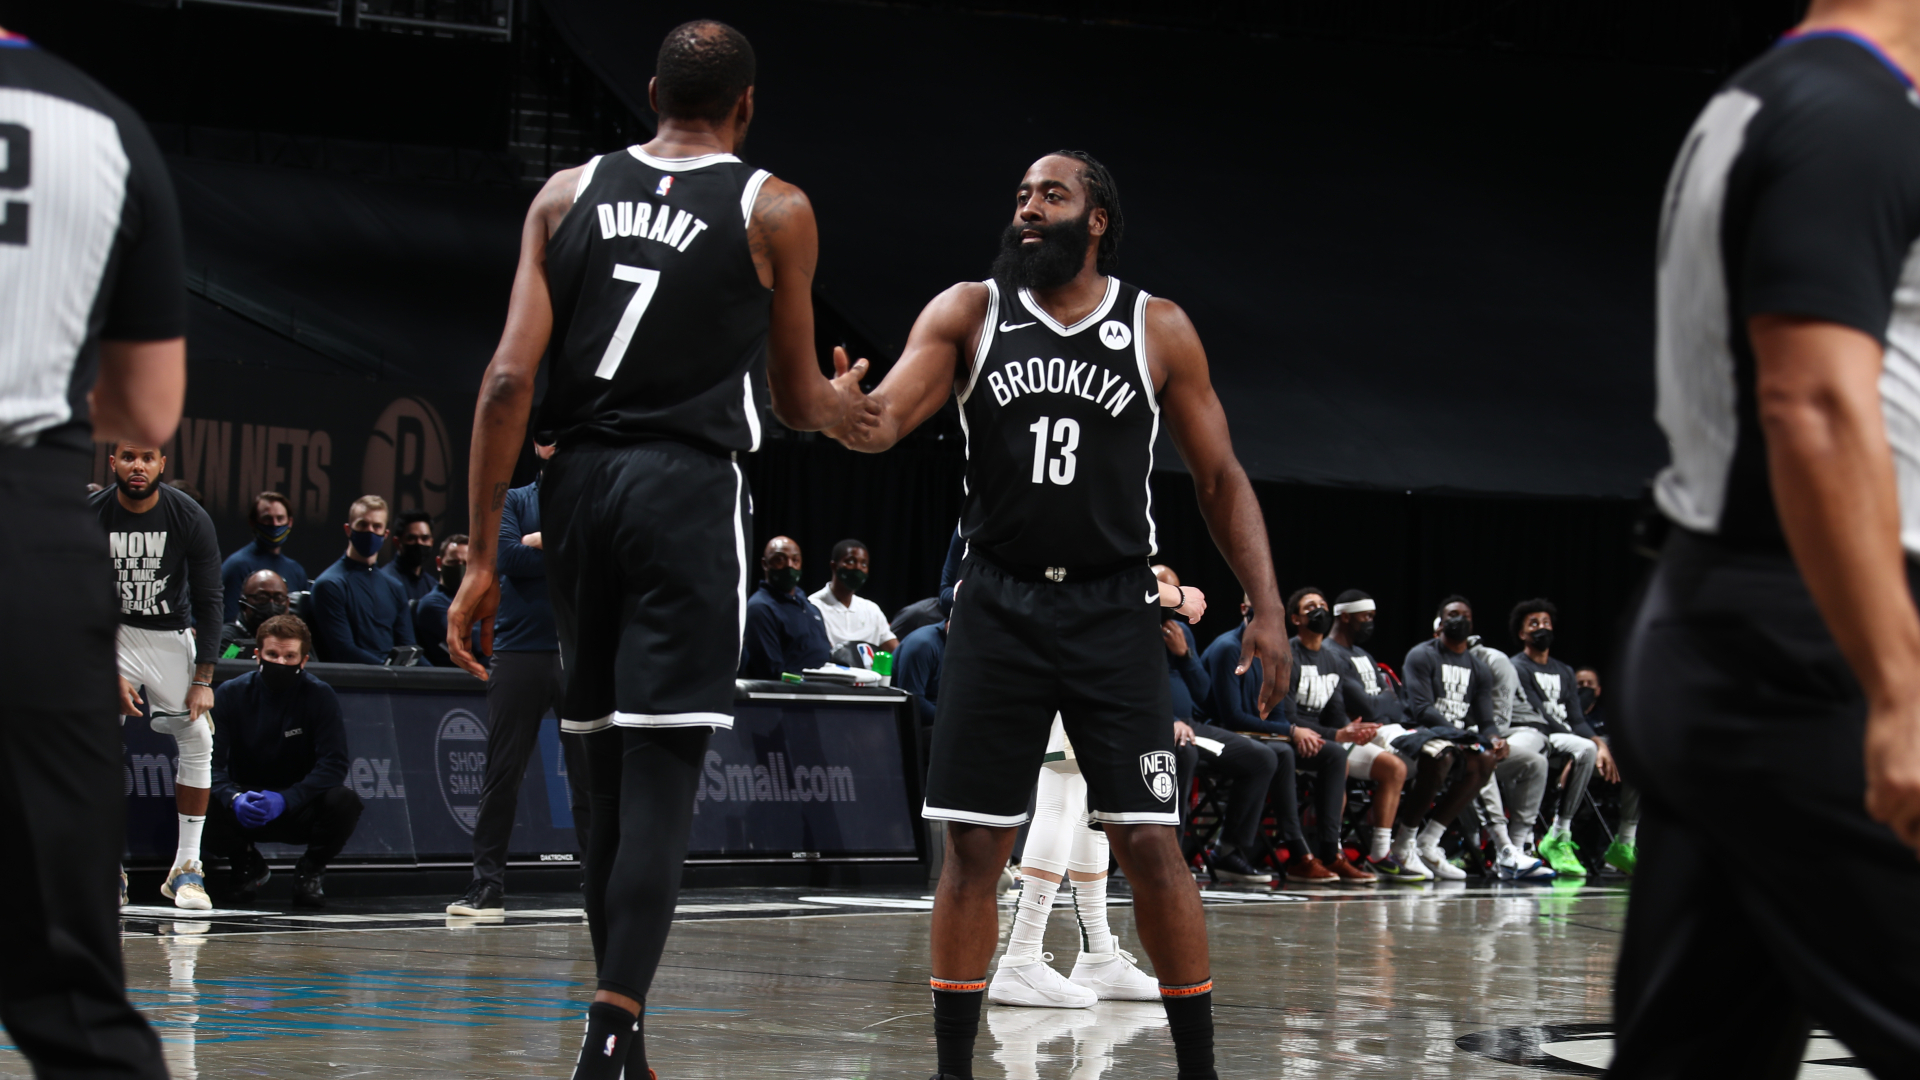 Durant and Harden hail 'seamless transition' after NBA record